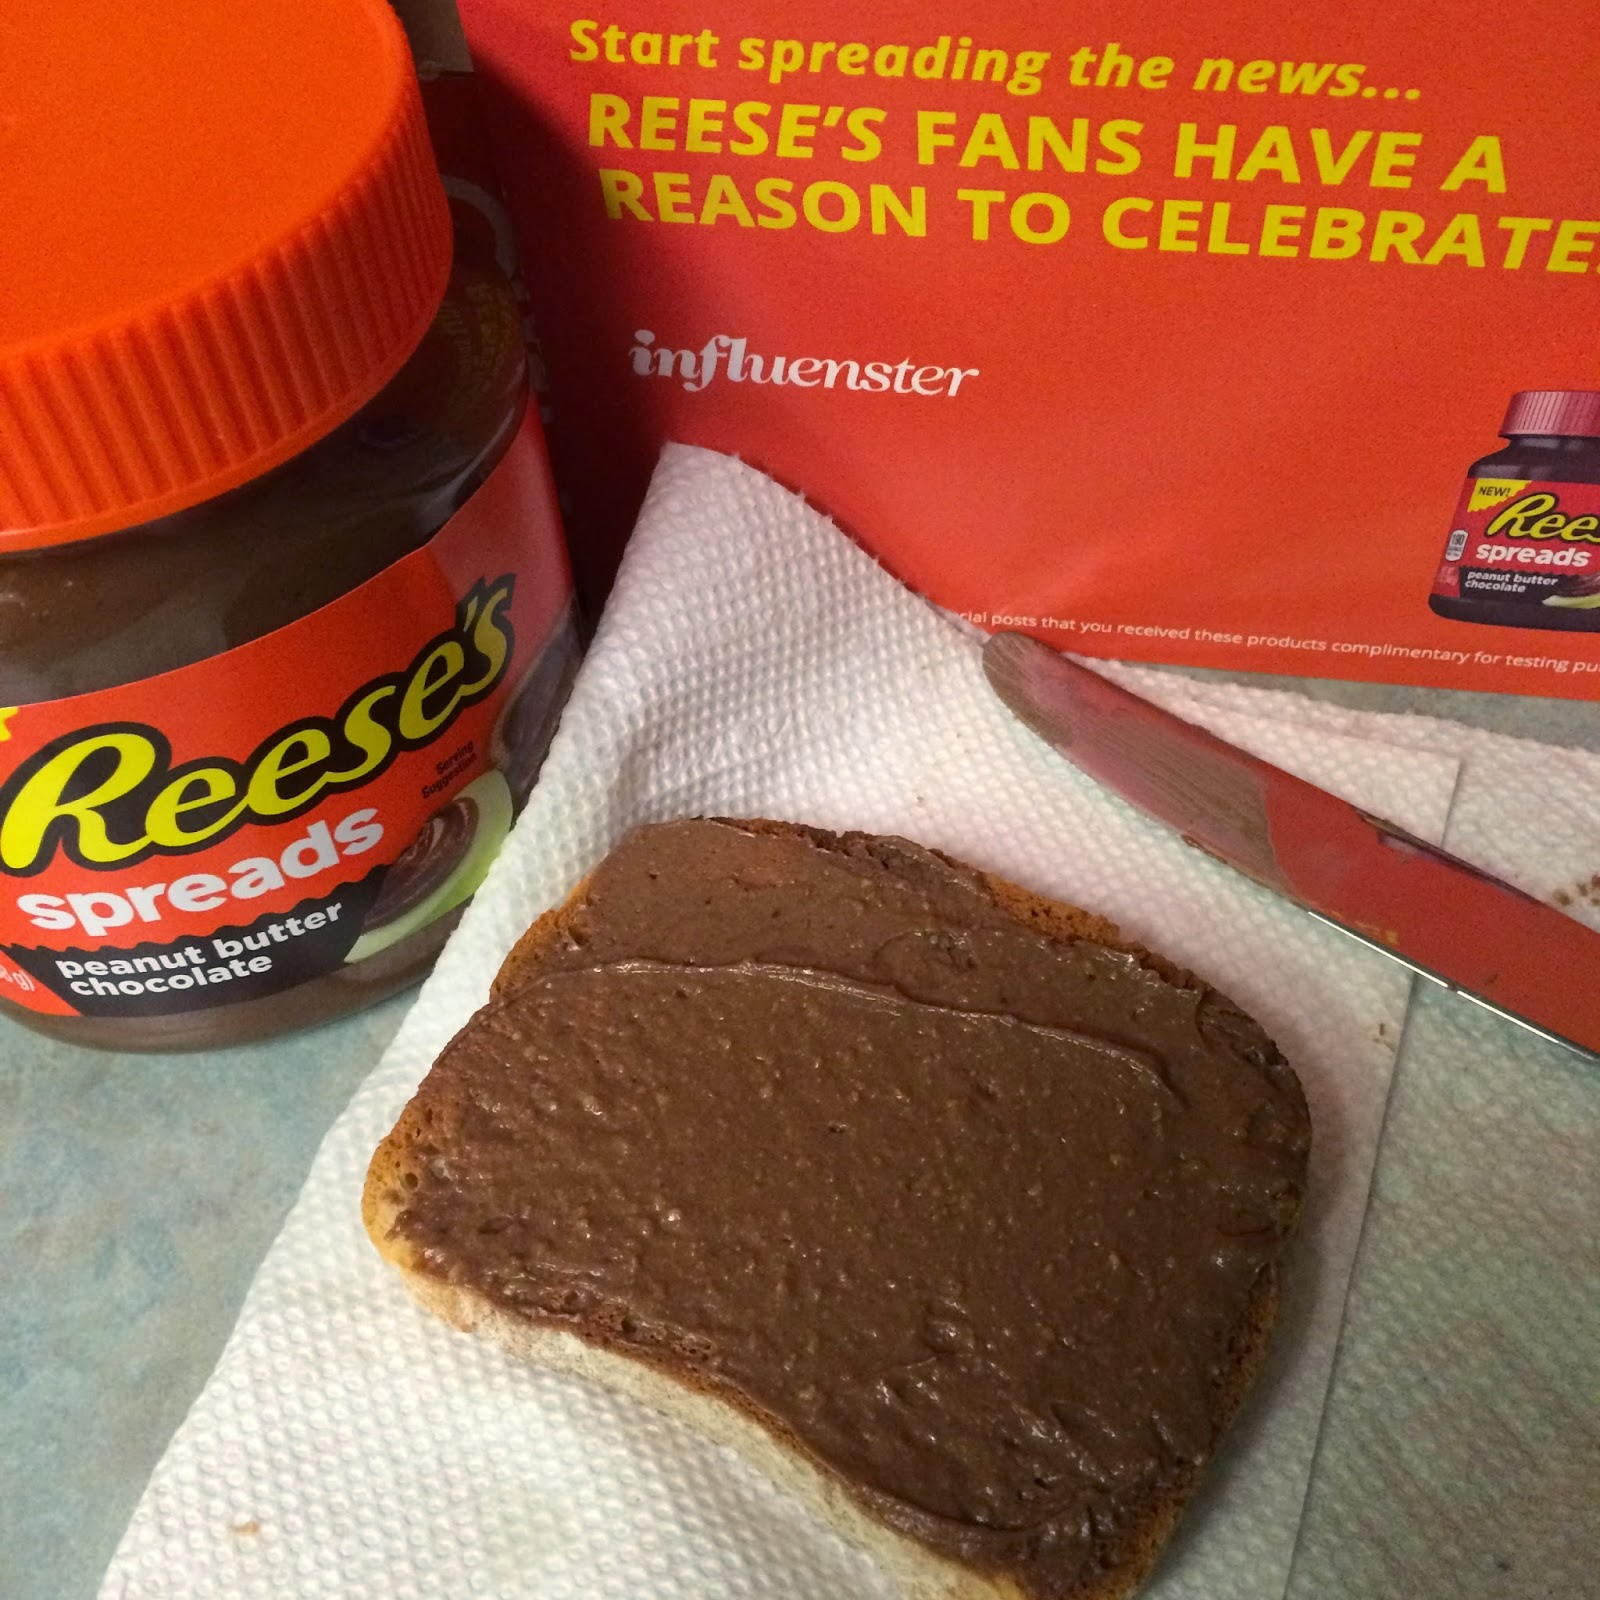 #reesesspreads Reese's Spreads on gluten free toast #review